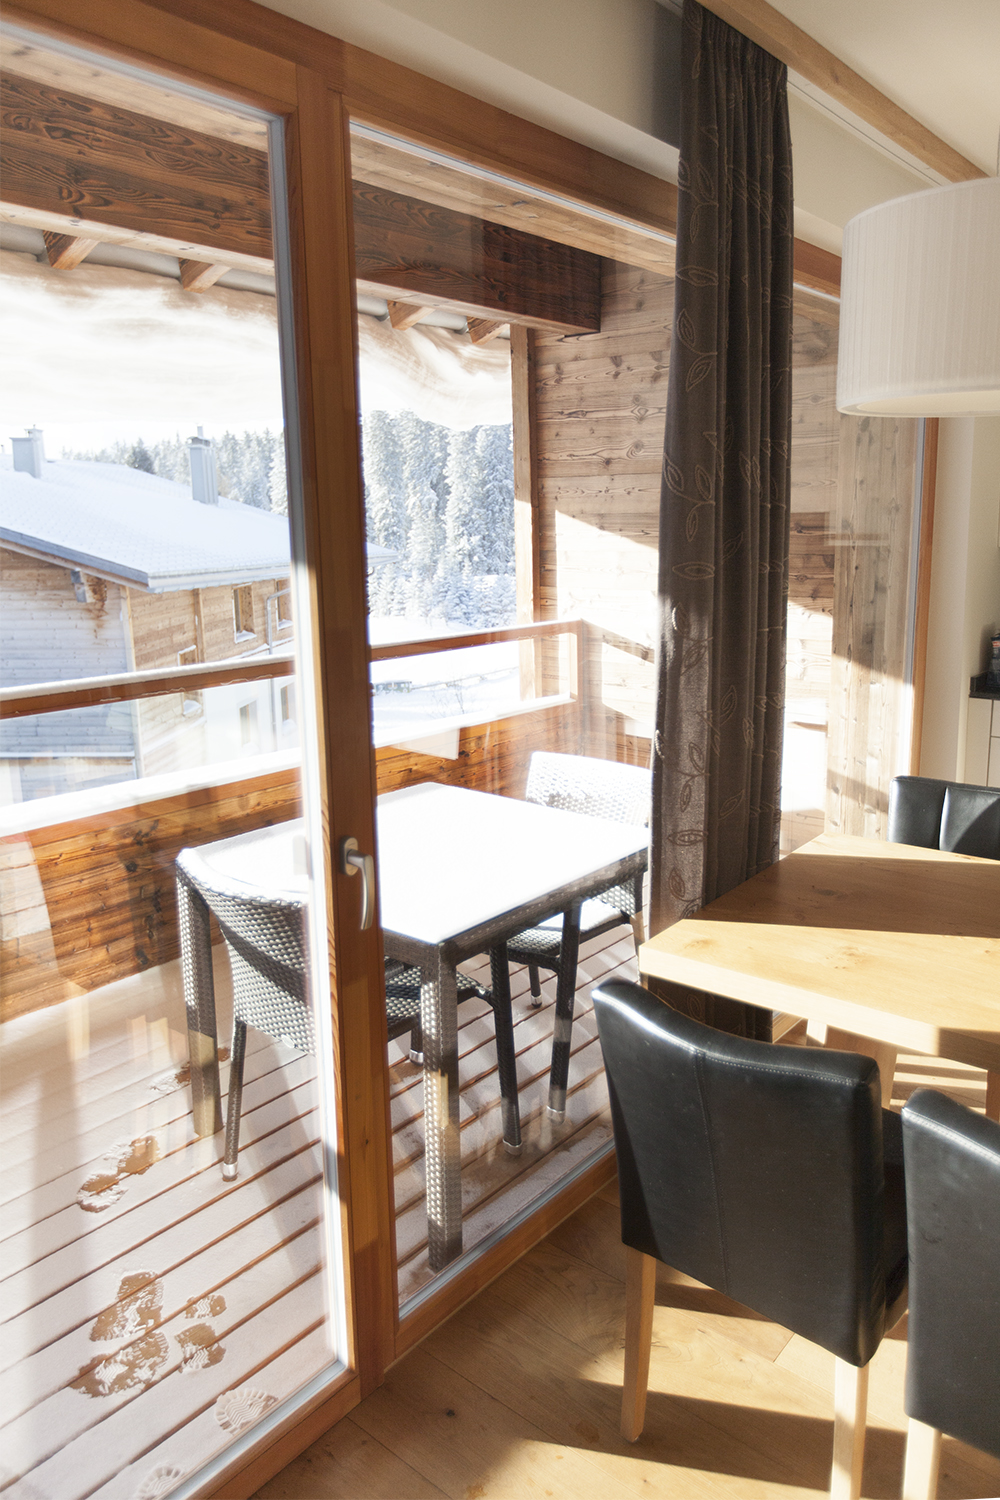 priva_lodge_lenzerheide_vivalamoda_munich_travel_blog_blogger_4